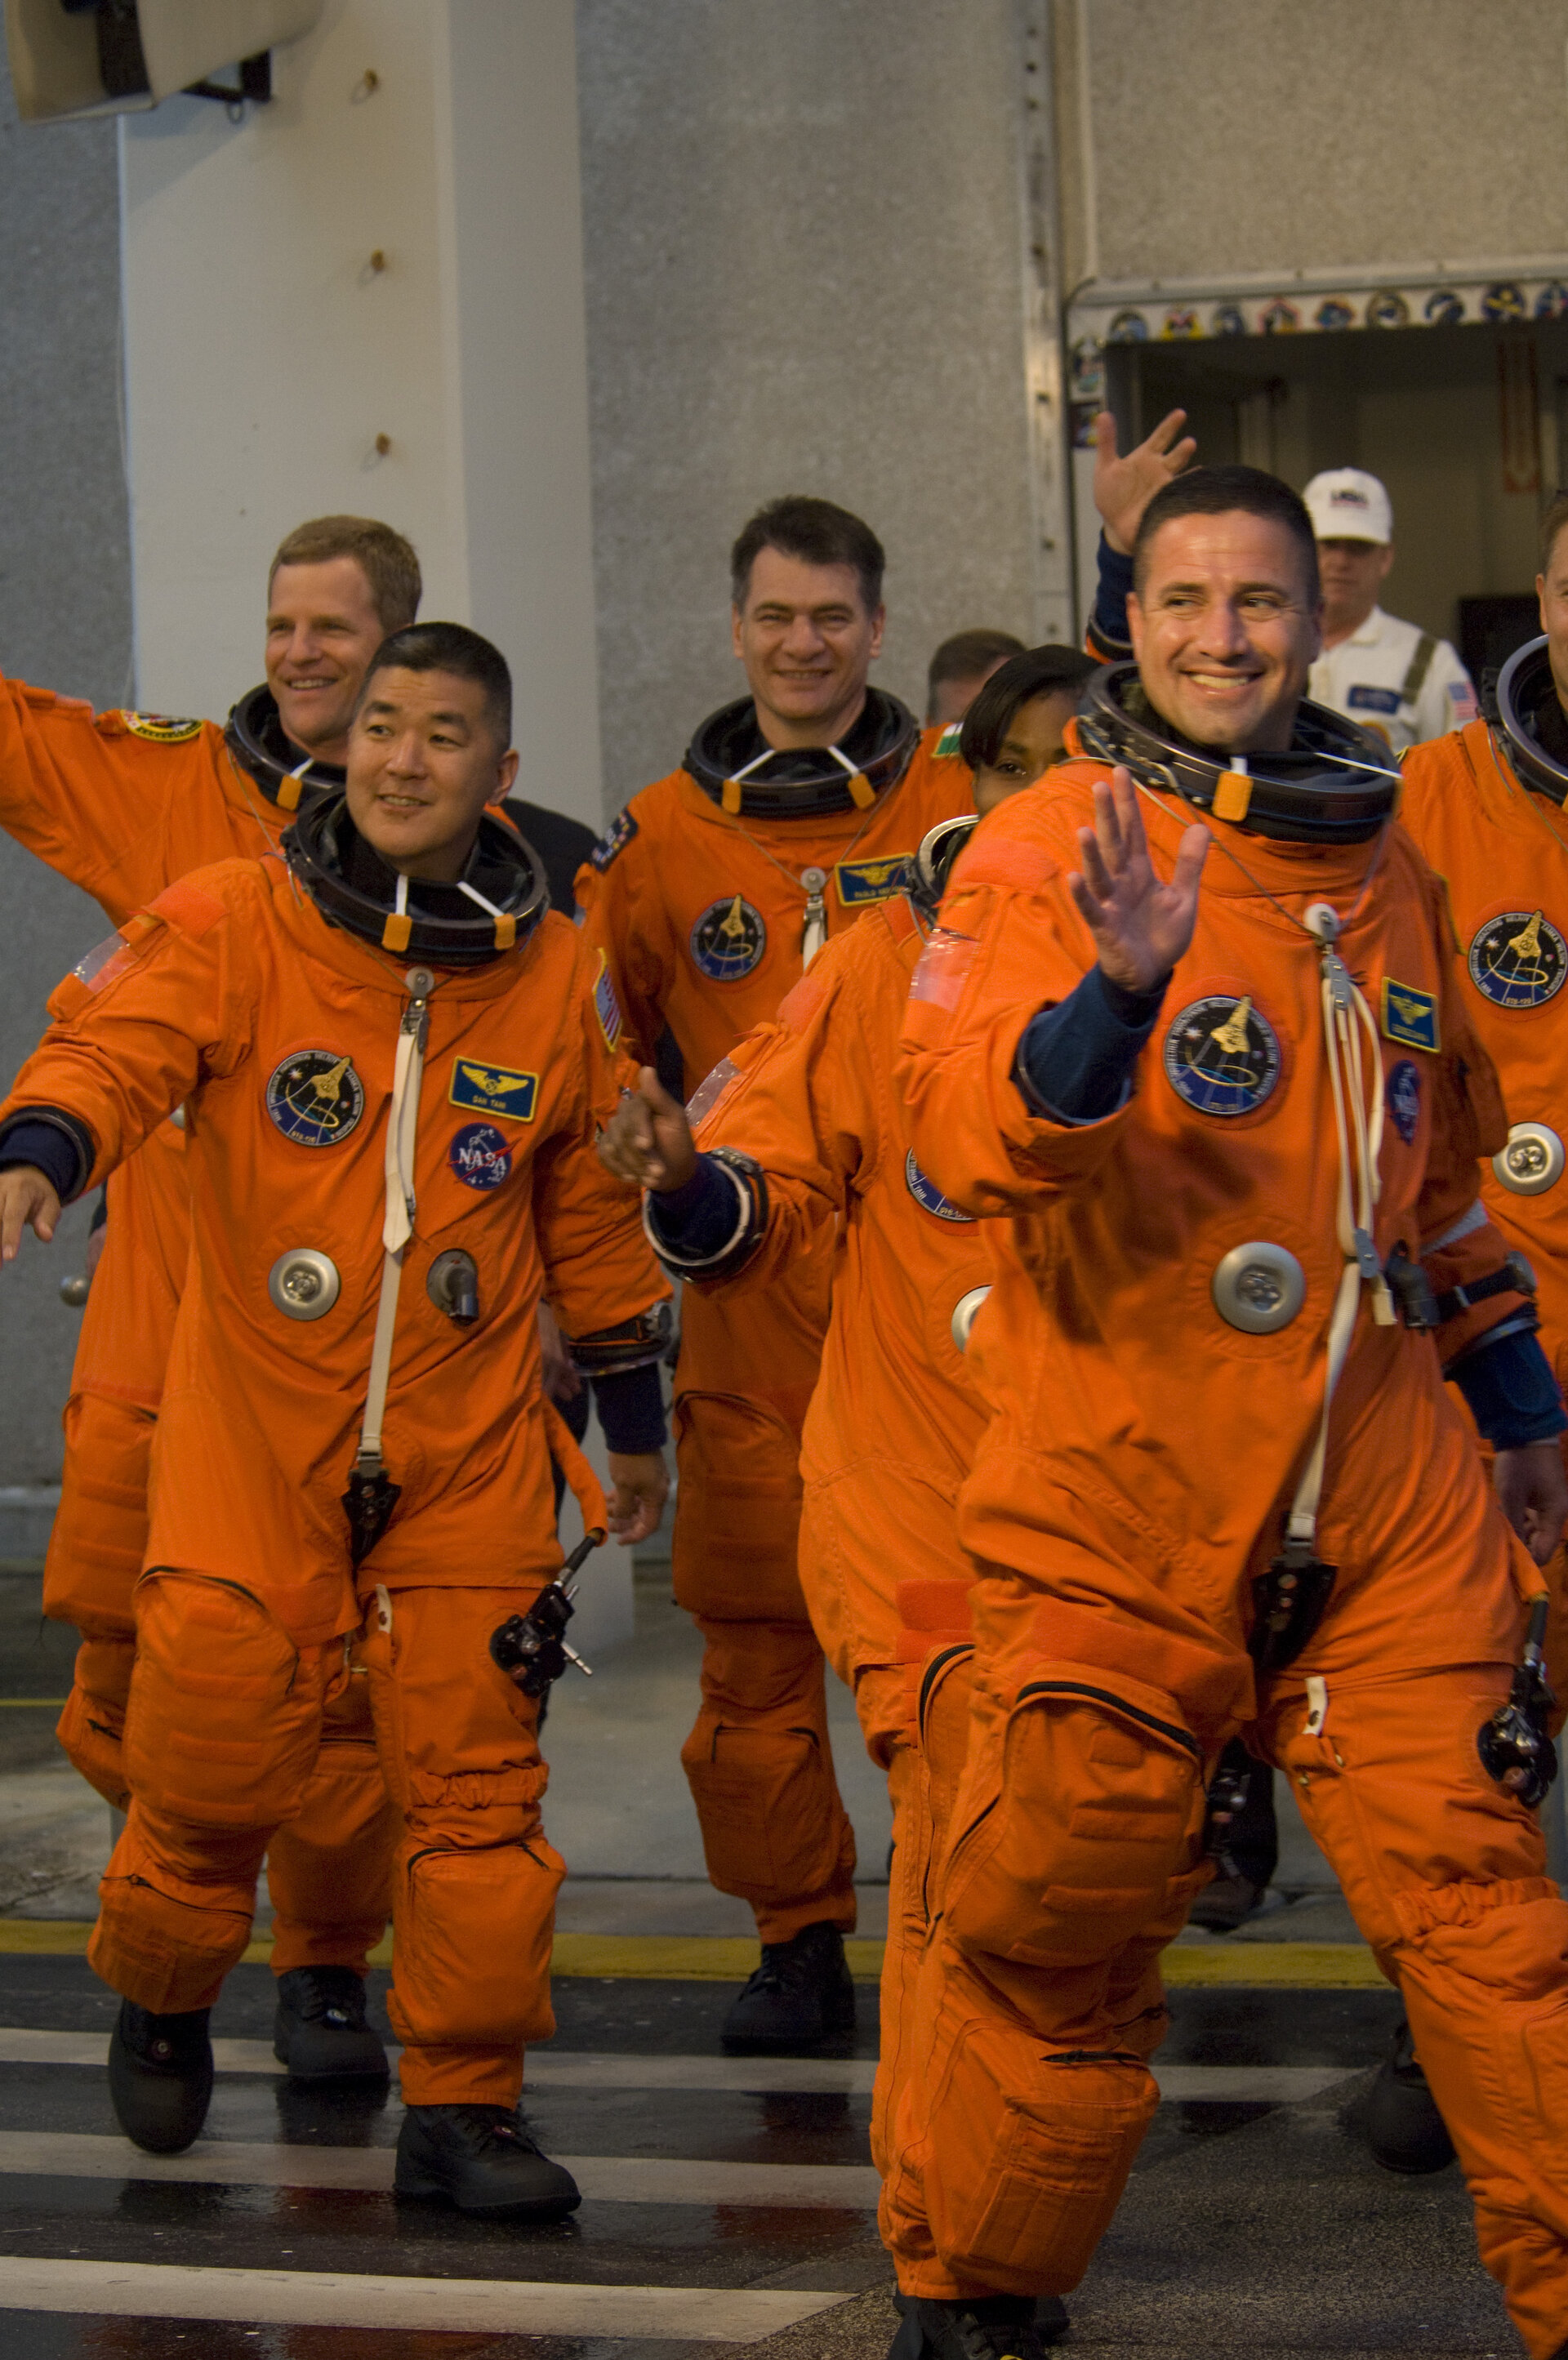 STS-120 mission crew walkout